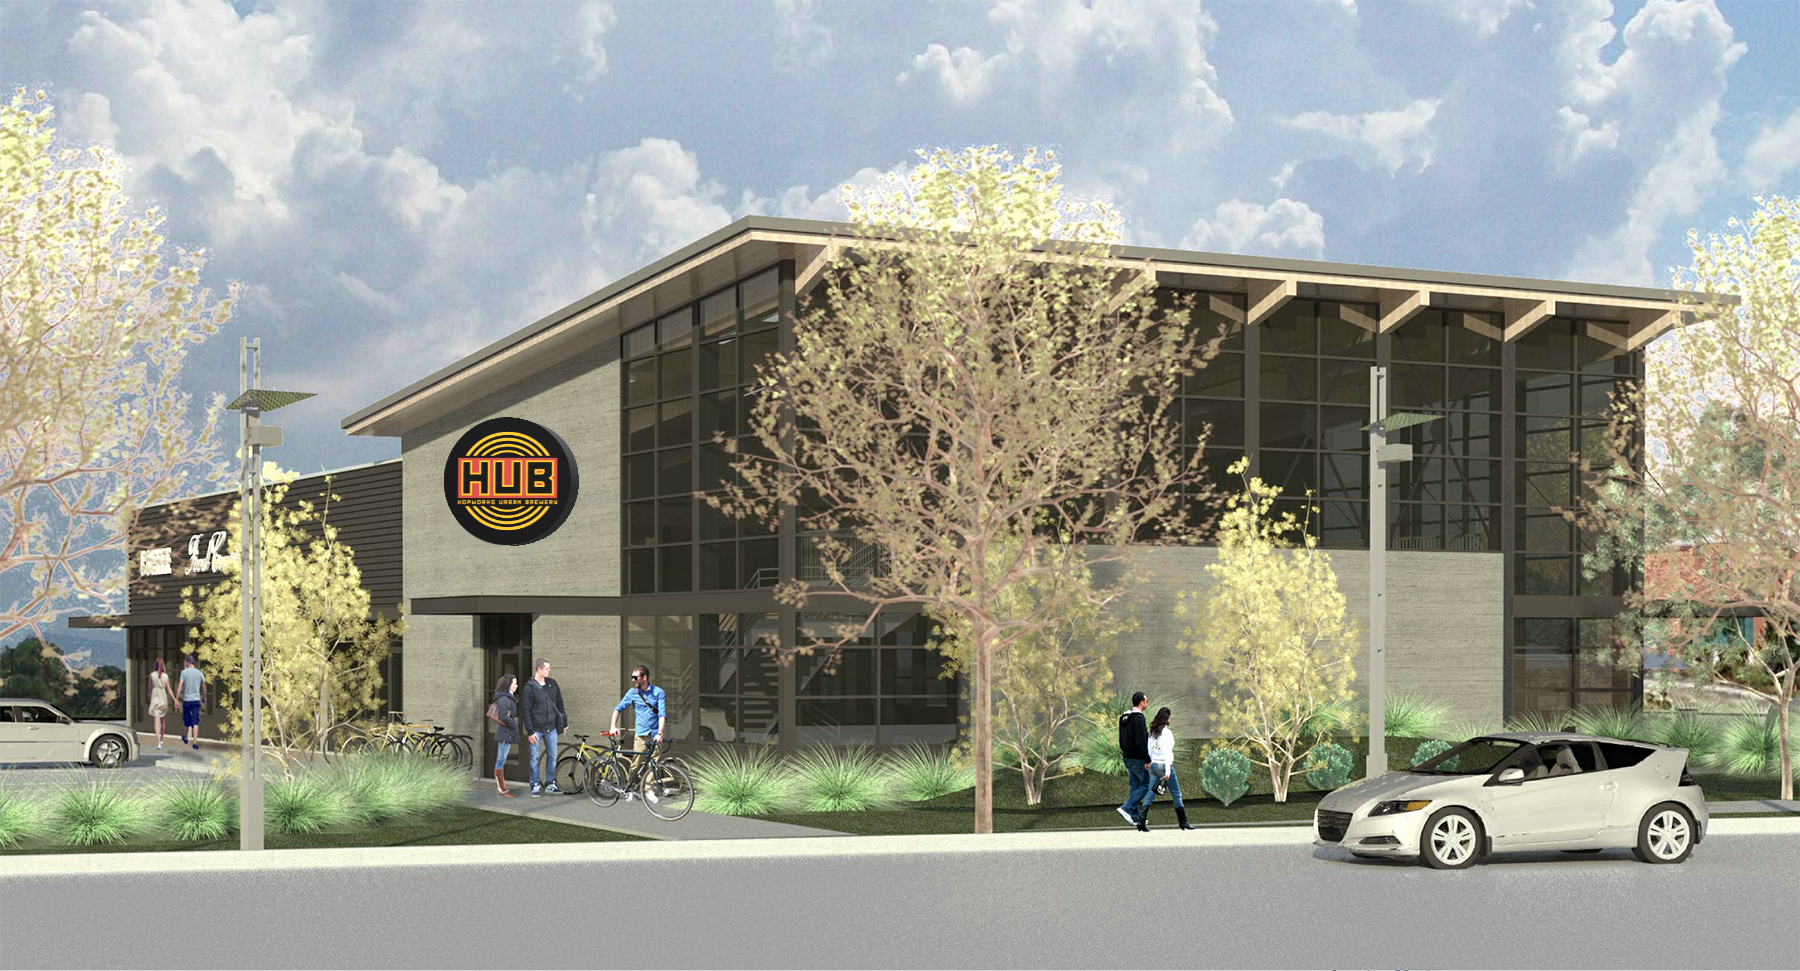 Rendering of the new Hopworks Urban Brewery location in Vancouver, Washington. (image courtesy of Siteworks)